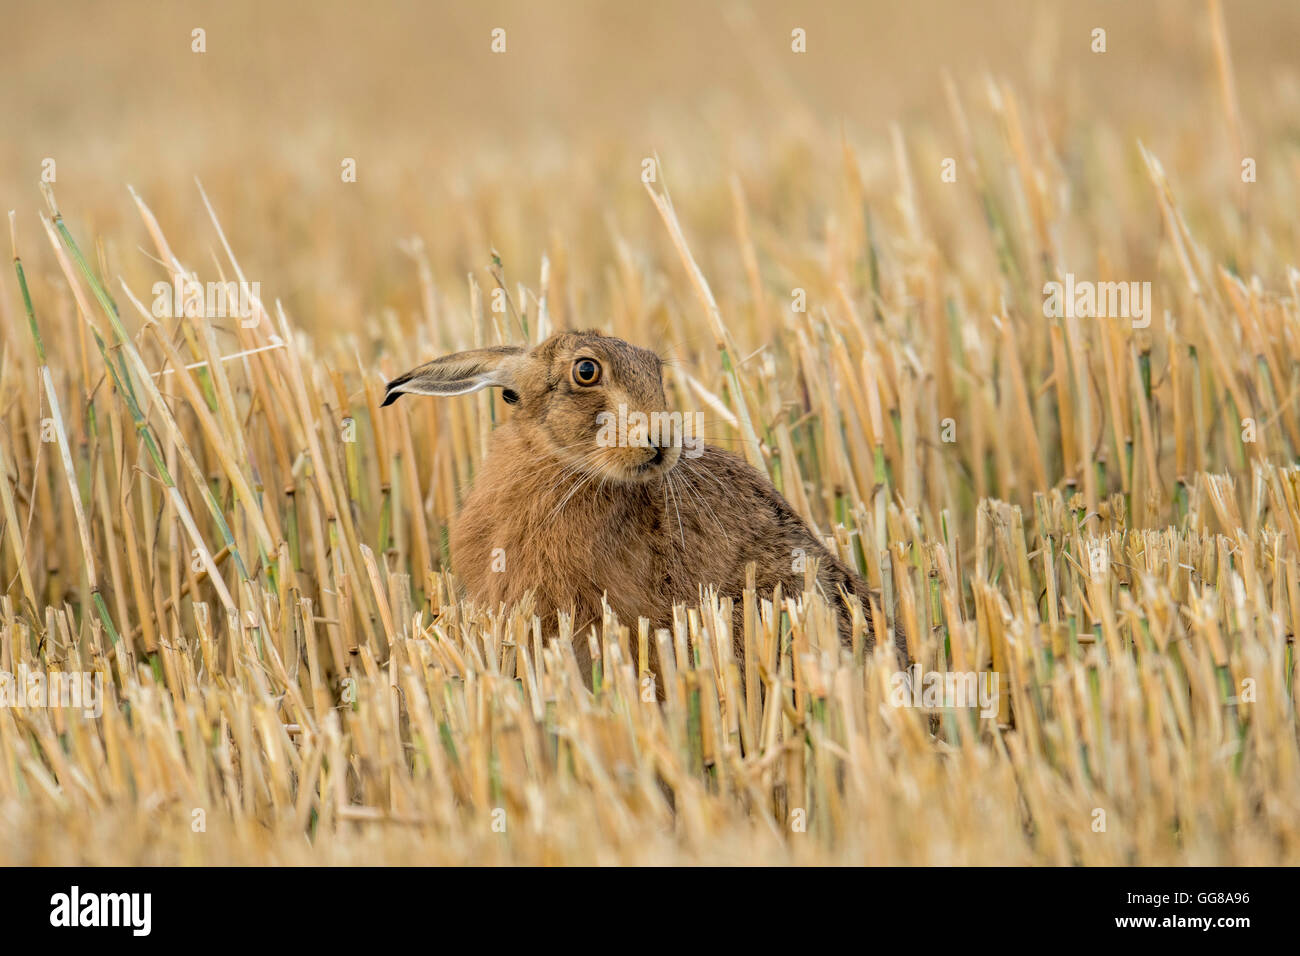 European Brown Hare(Lepus europaeus) sat in a Norfolk stubble field. - Stock Image